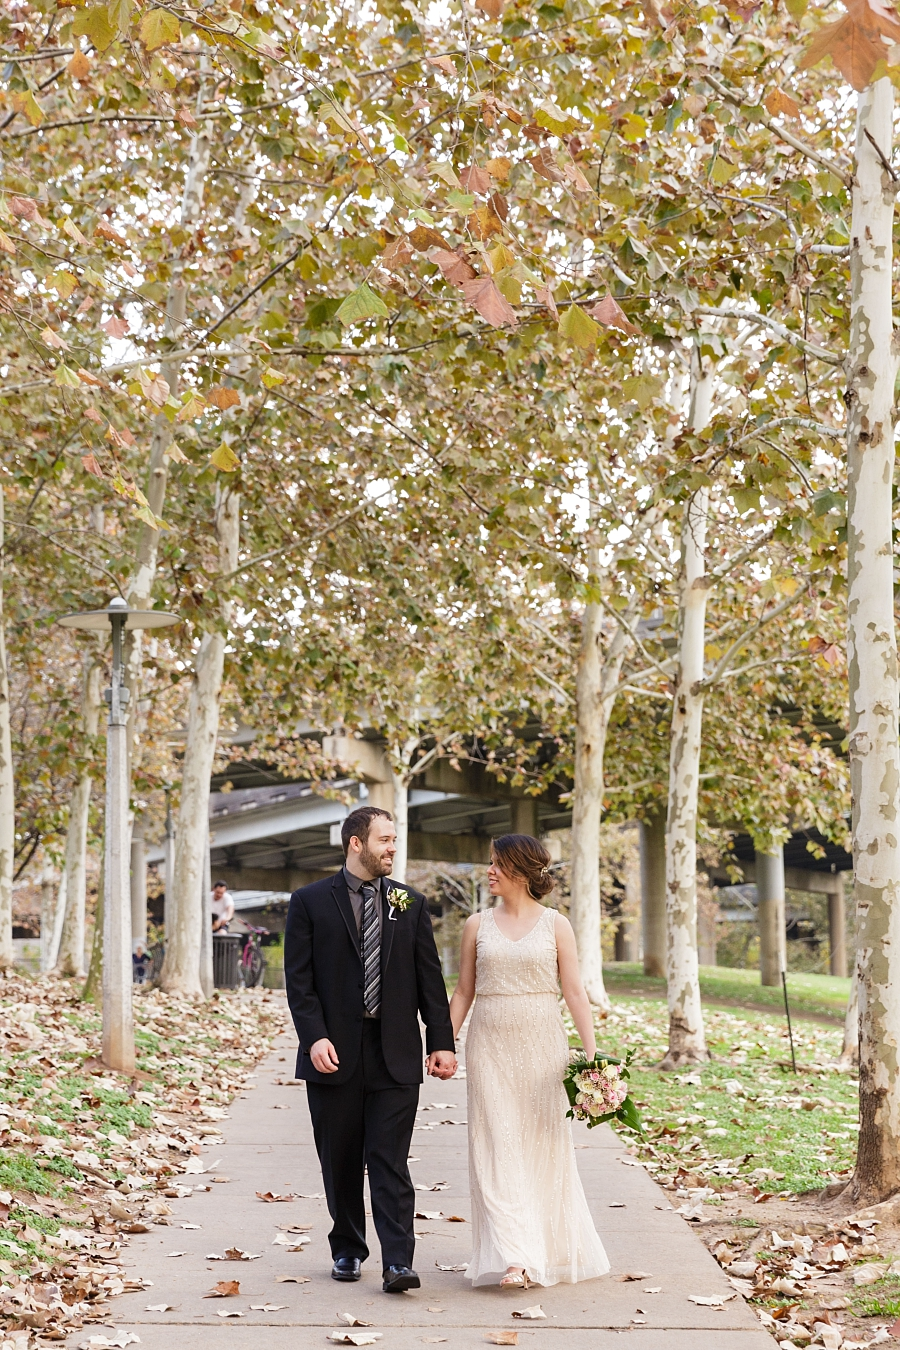 Stacy-Anderson-Photography-Houston-Courthouse-Vic-Anthony-Wedding-Photographer_0015.jpg